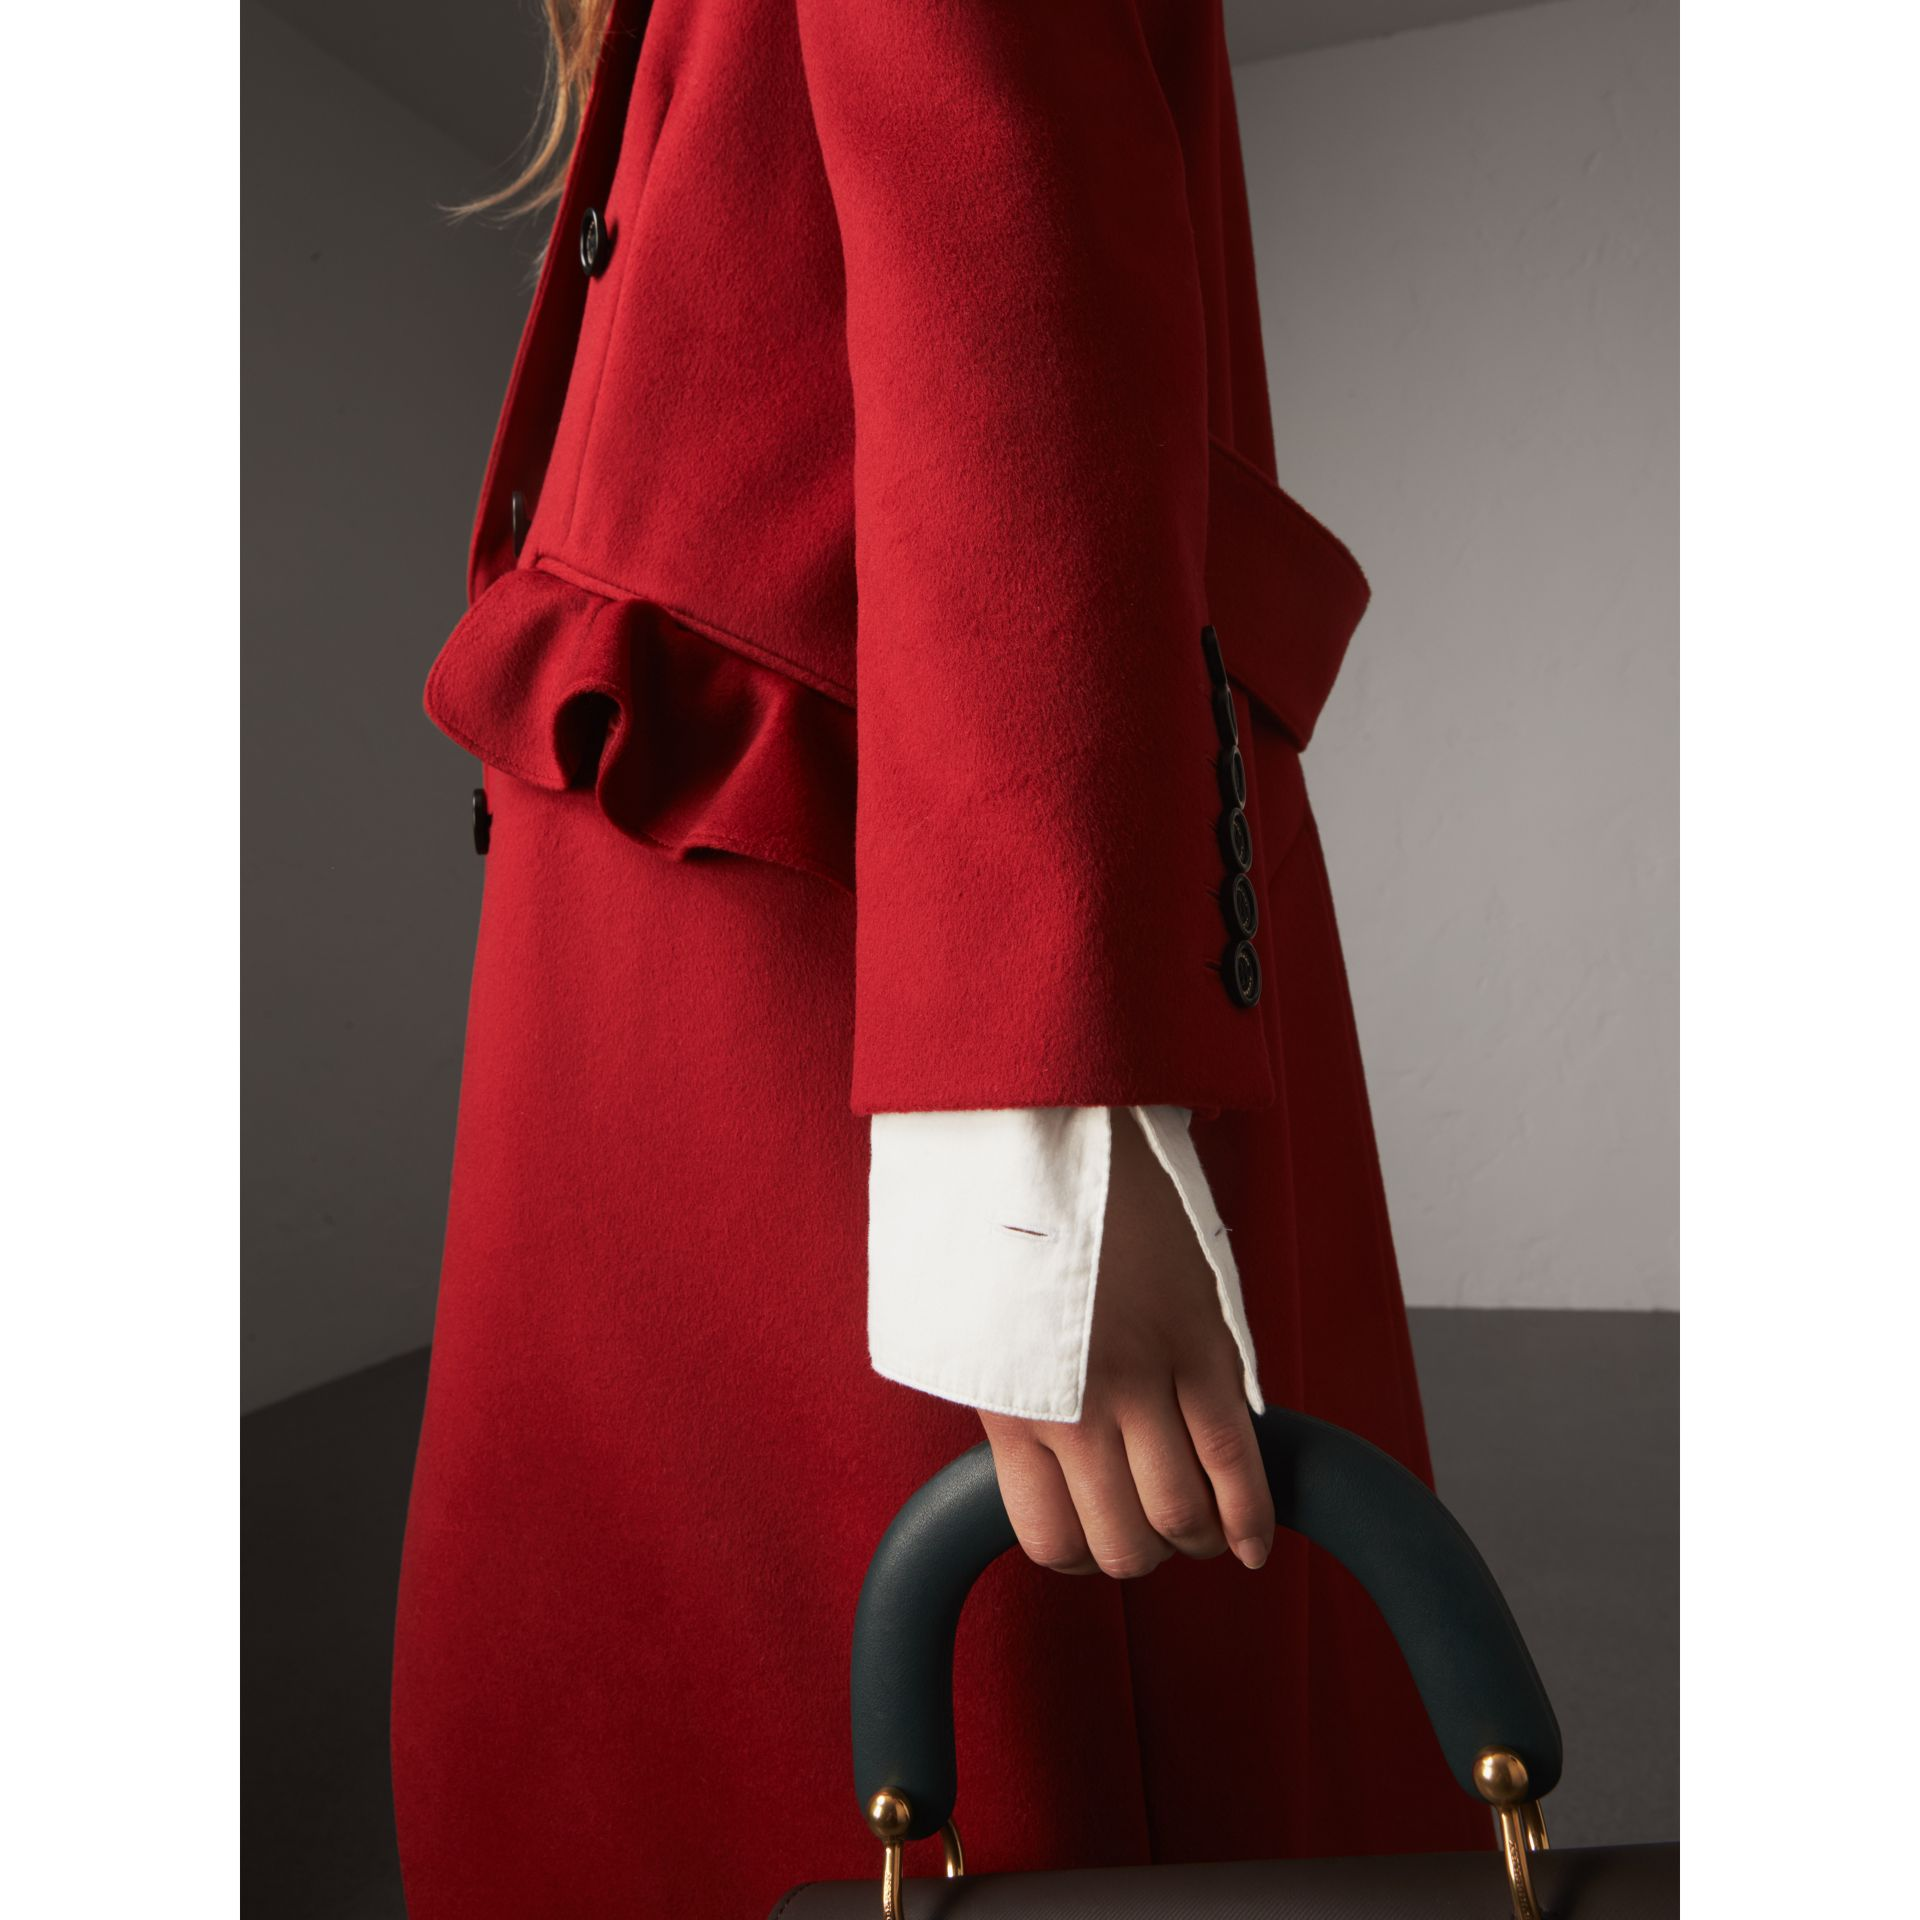 Ruffle Detail Wool Cashmere Tailored Coat in Military Red - Women | Burberry Australia - gallery image 5